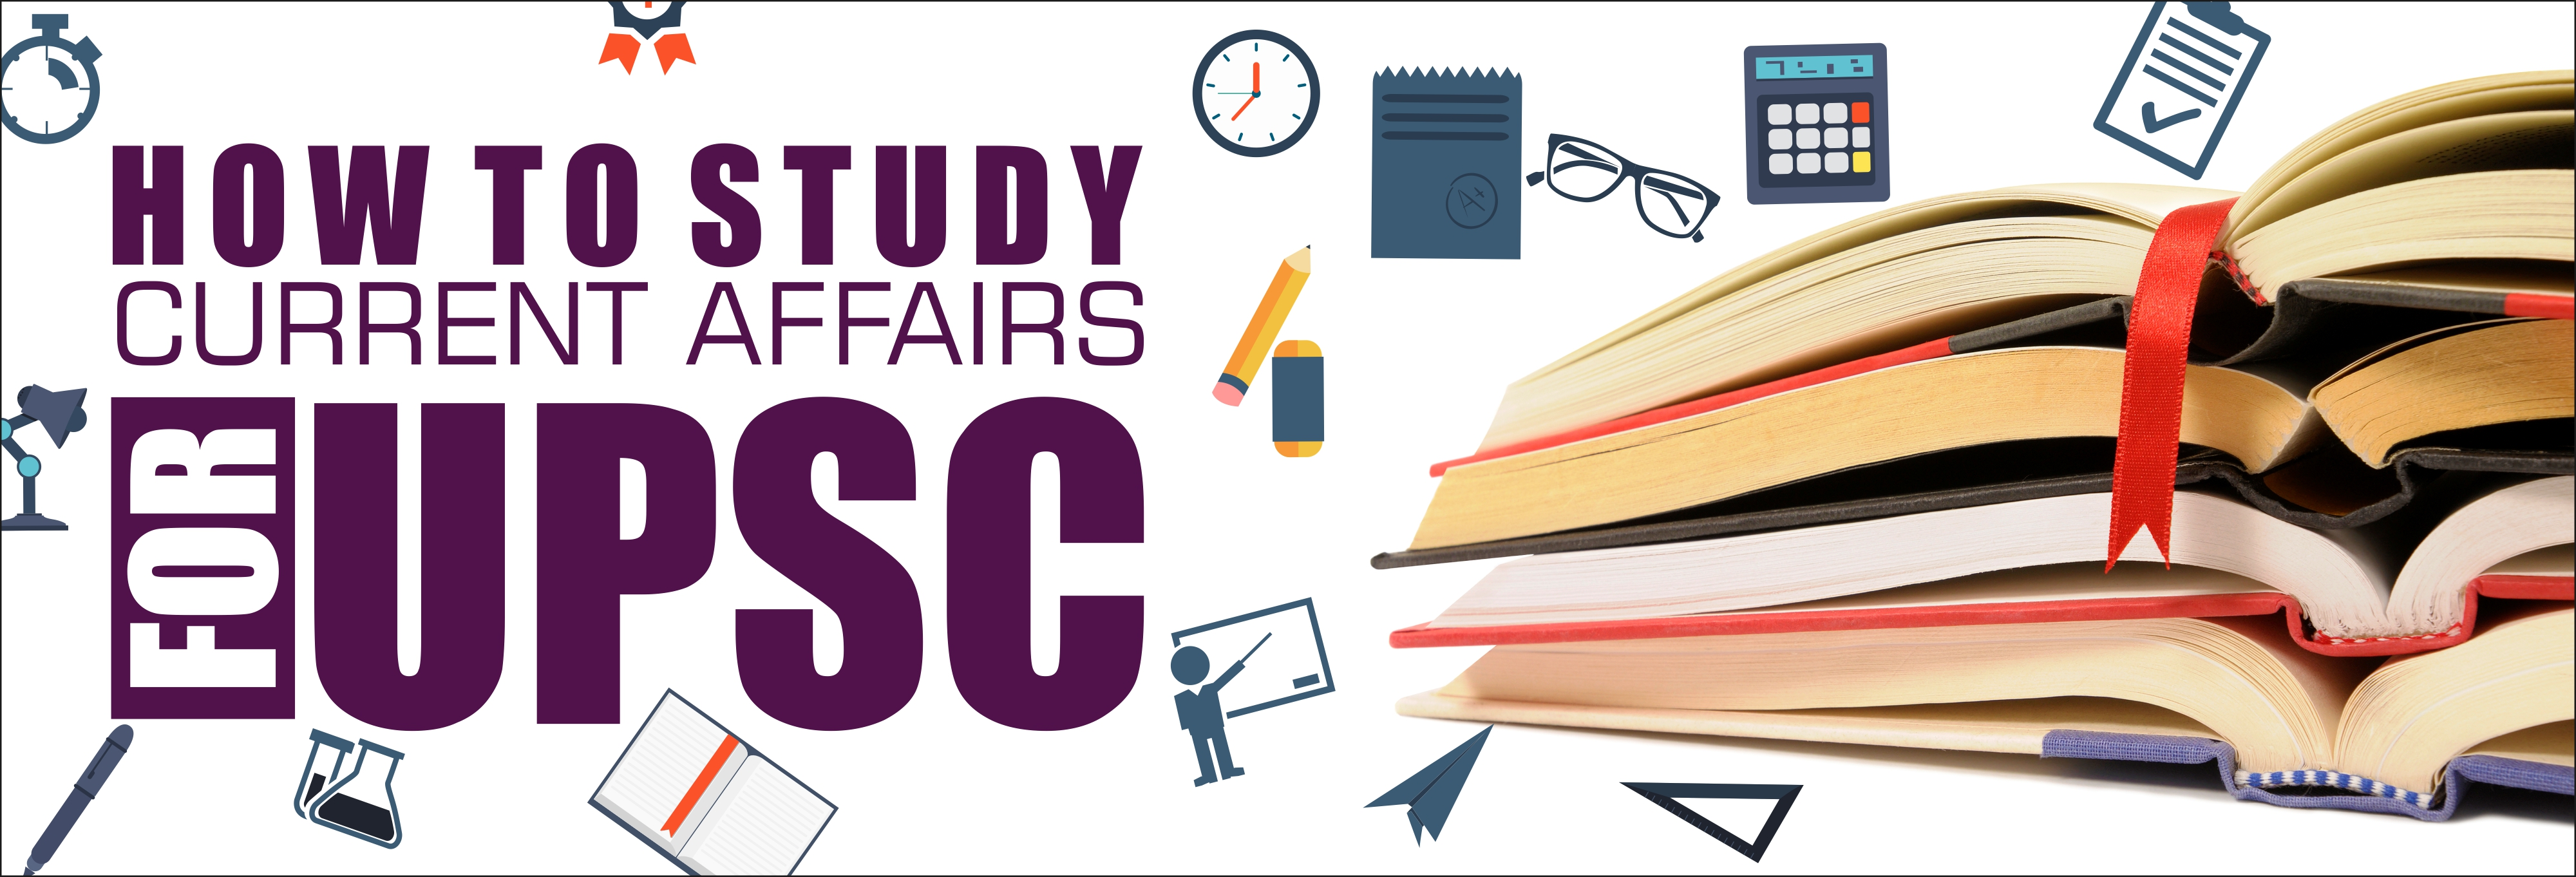 how to study CA for UPSC